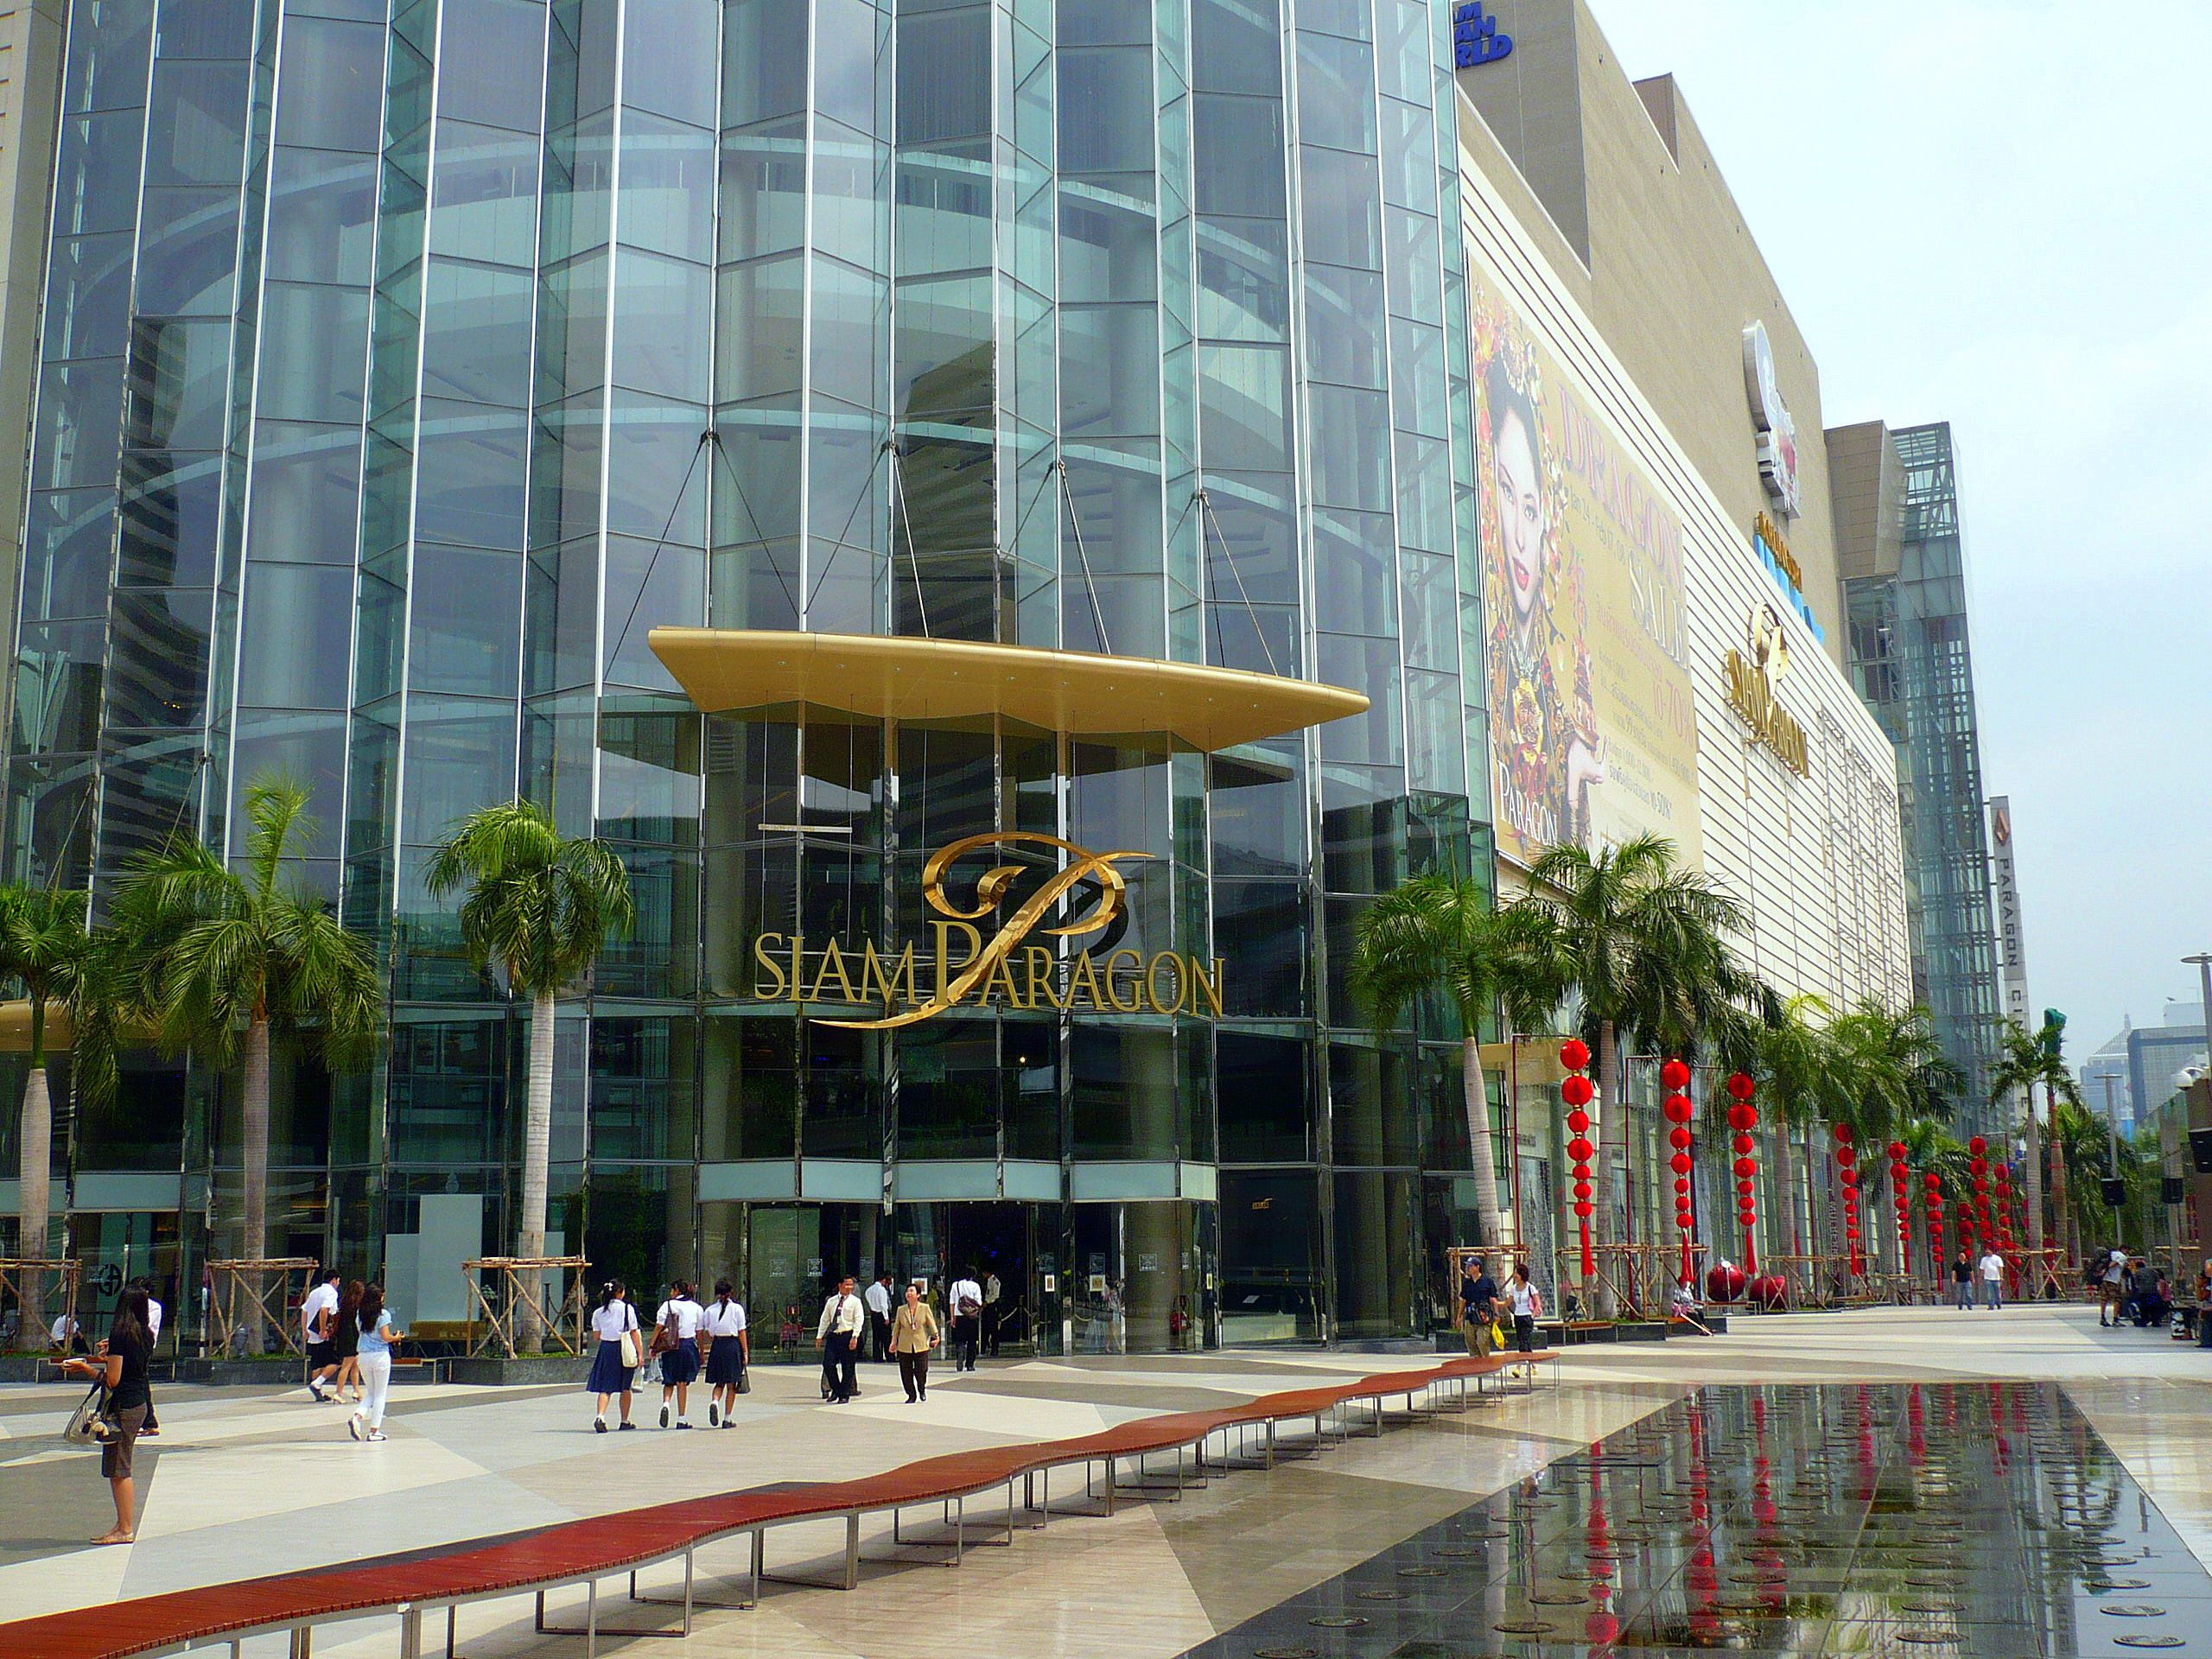 Siam Paragon is on Rama I Road in Pathum